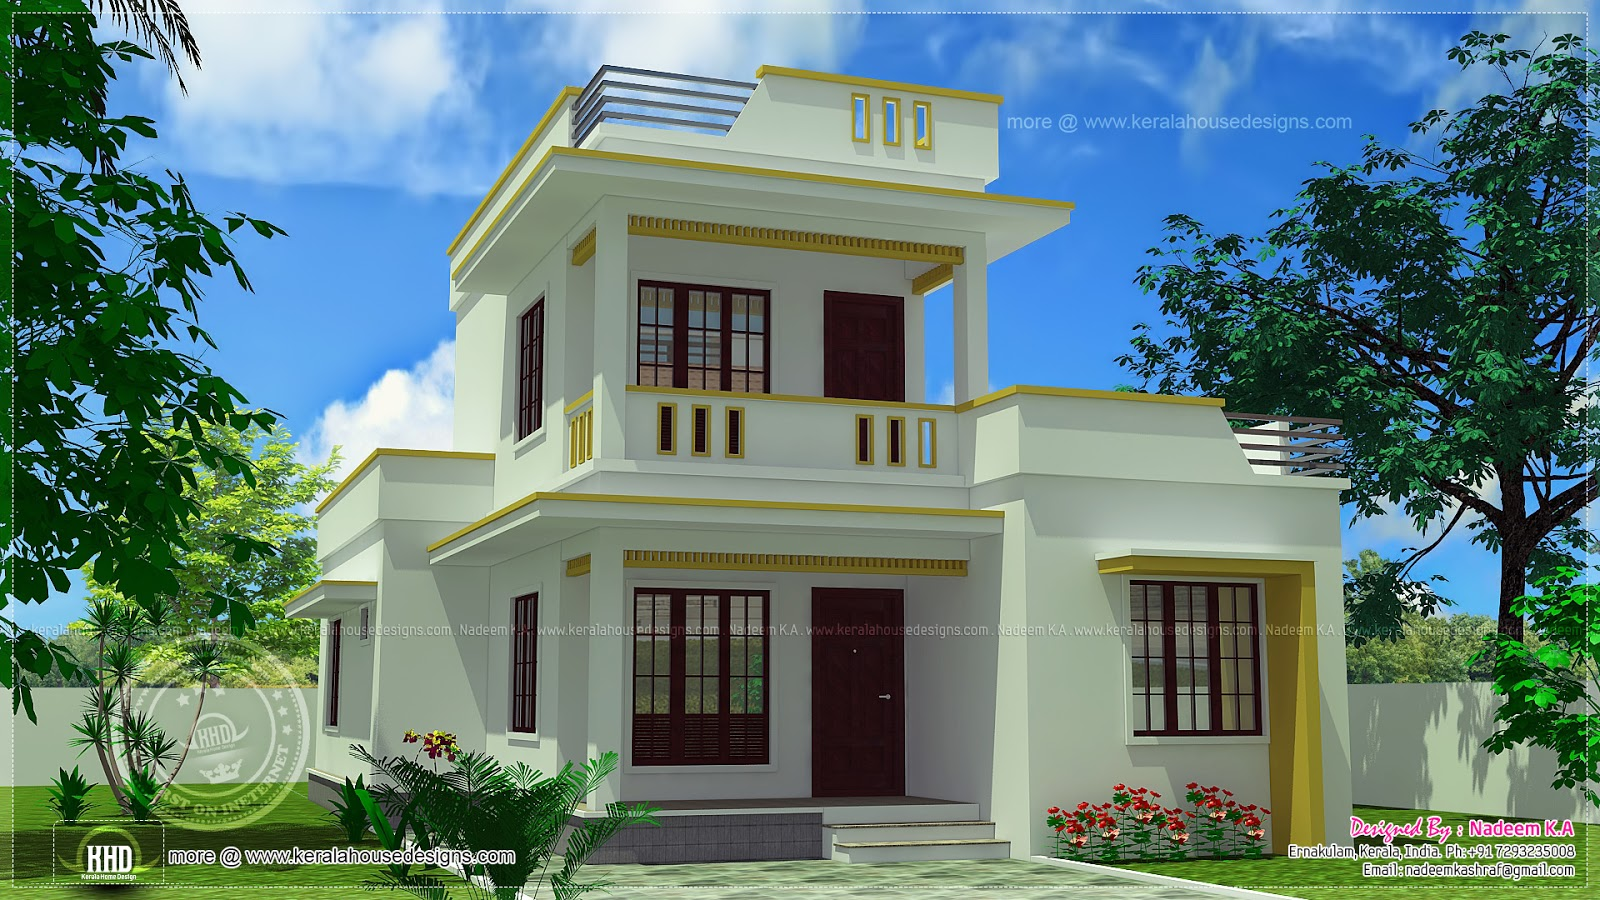 August 2013 kerala home design and floor plans Simple house designs indian style